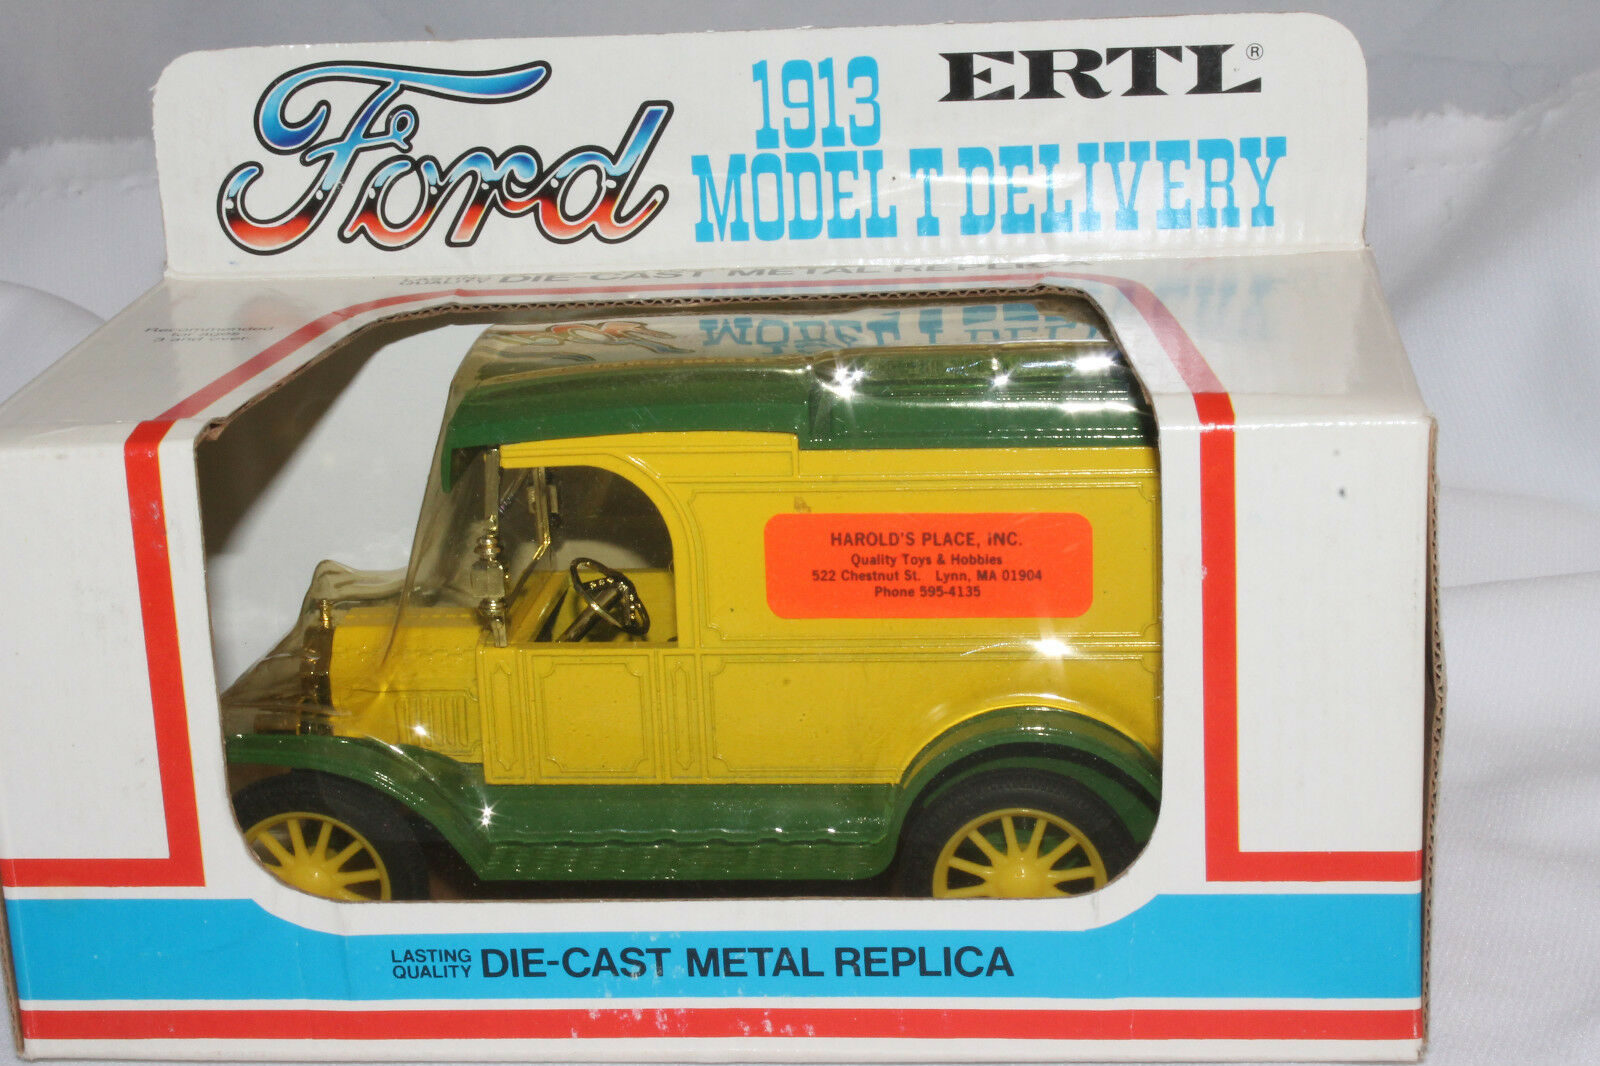 604ms Ertl Harold's Ort Private Label Lkw, 1913 Model T Ford, Mint Verpackt